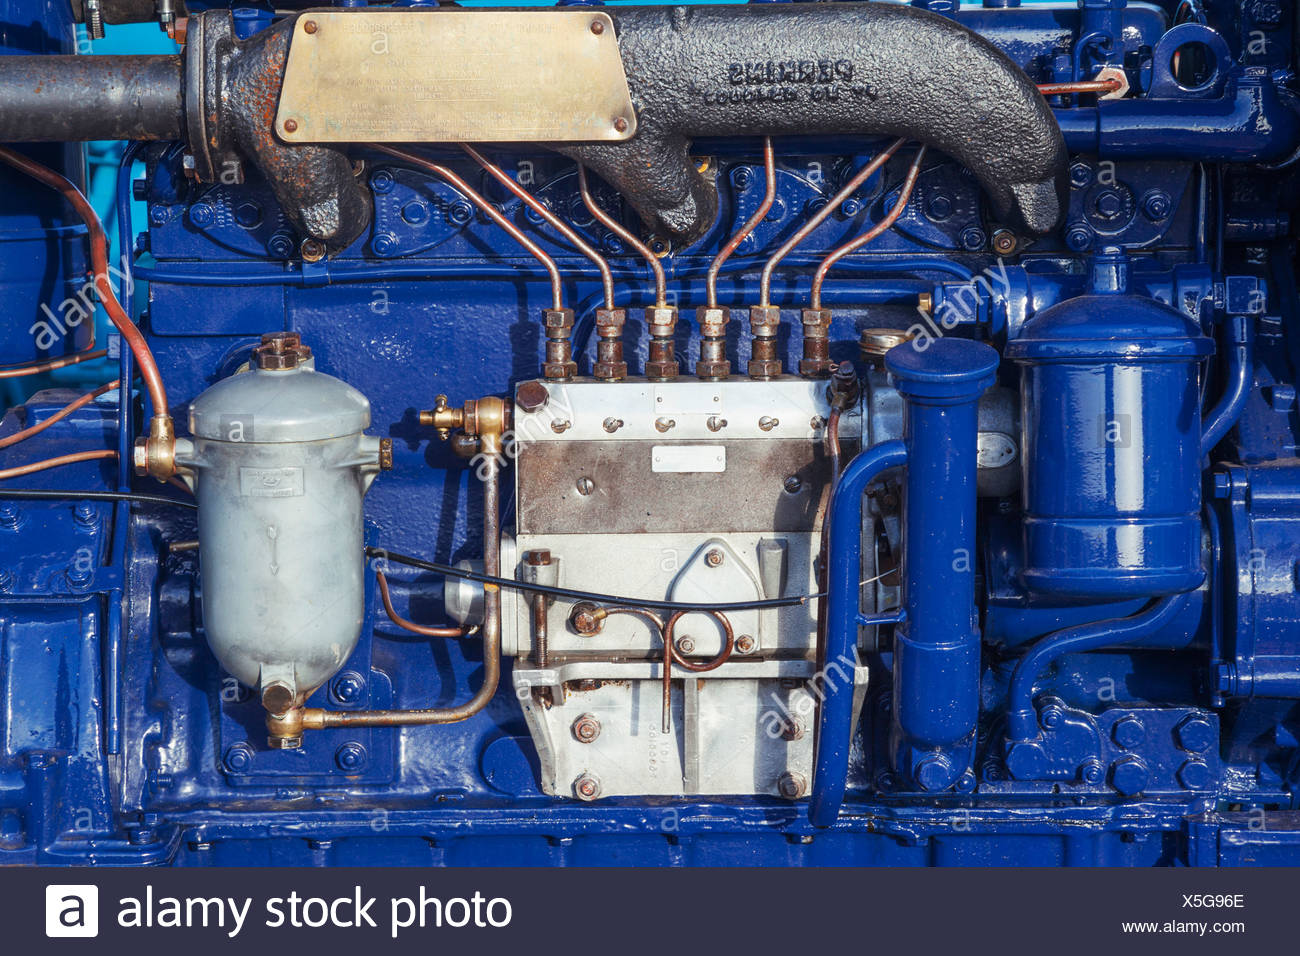 Perkins Engine Stock Photos & Perkins Engine Stock Images - Alamy